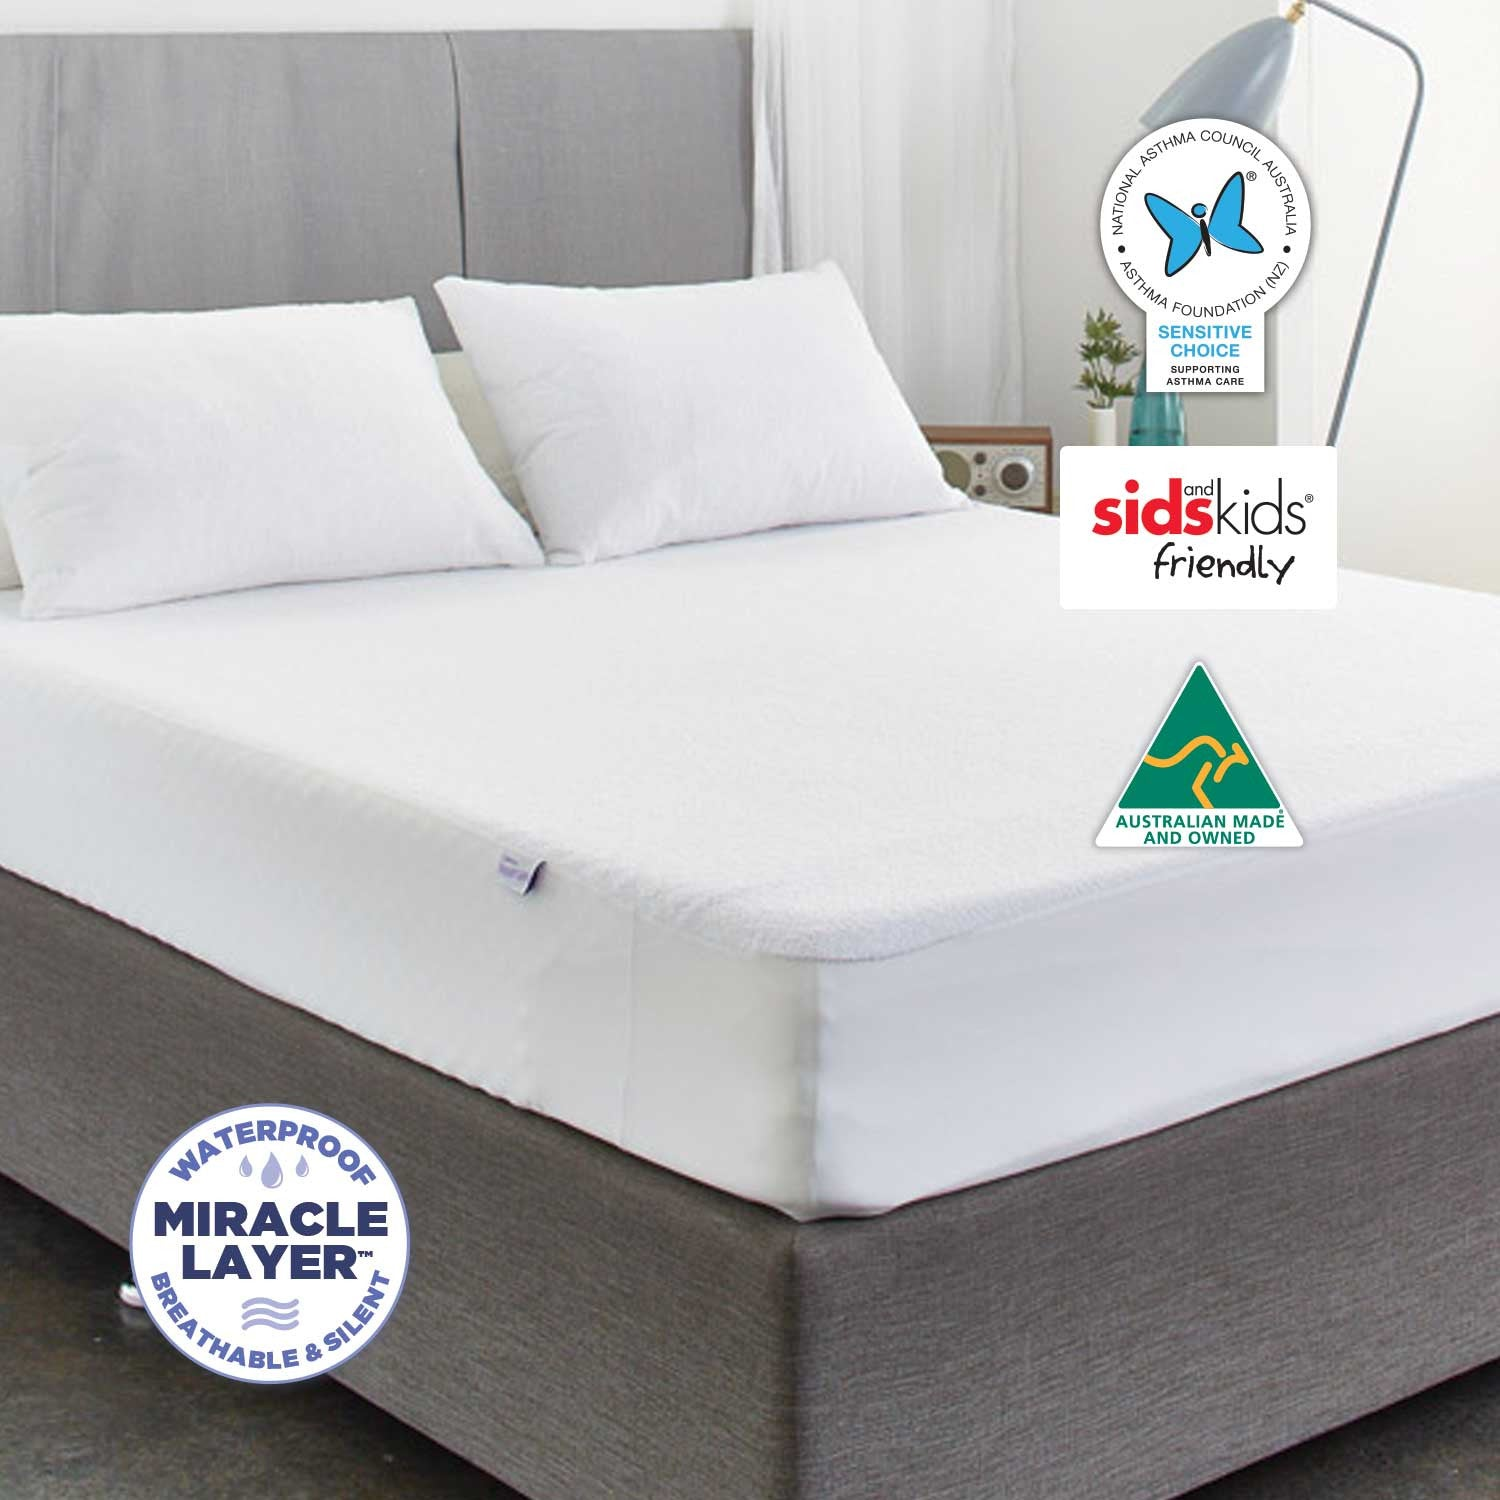 double crenshaw products all mattress sided magnus inspire sizes king